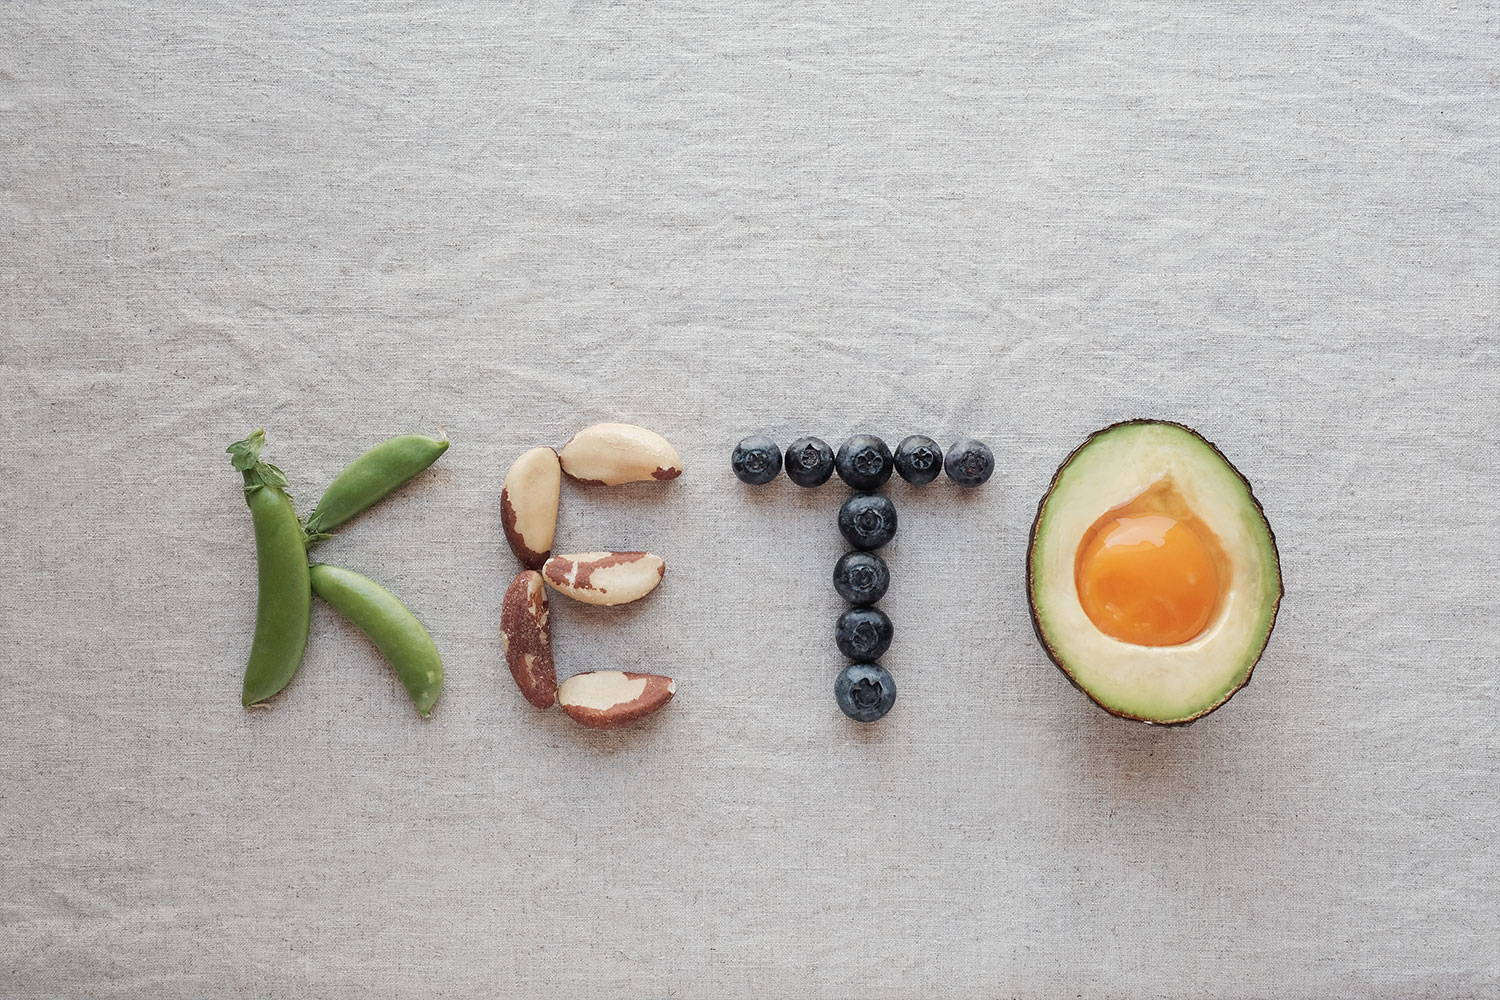 Keto Diet: What You Should Know about Potential Harmful Side Effects